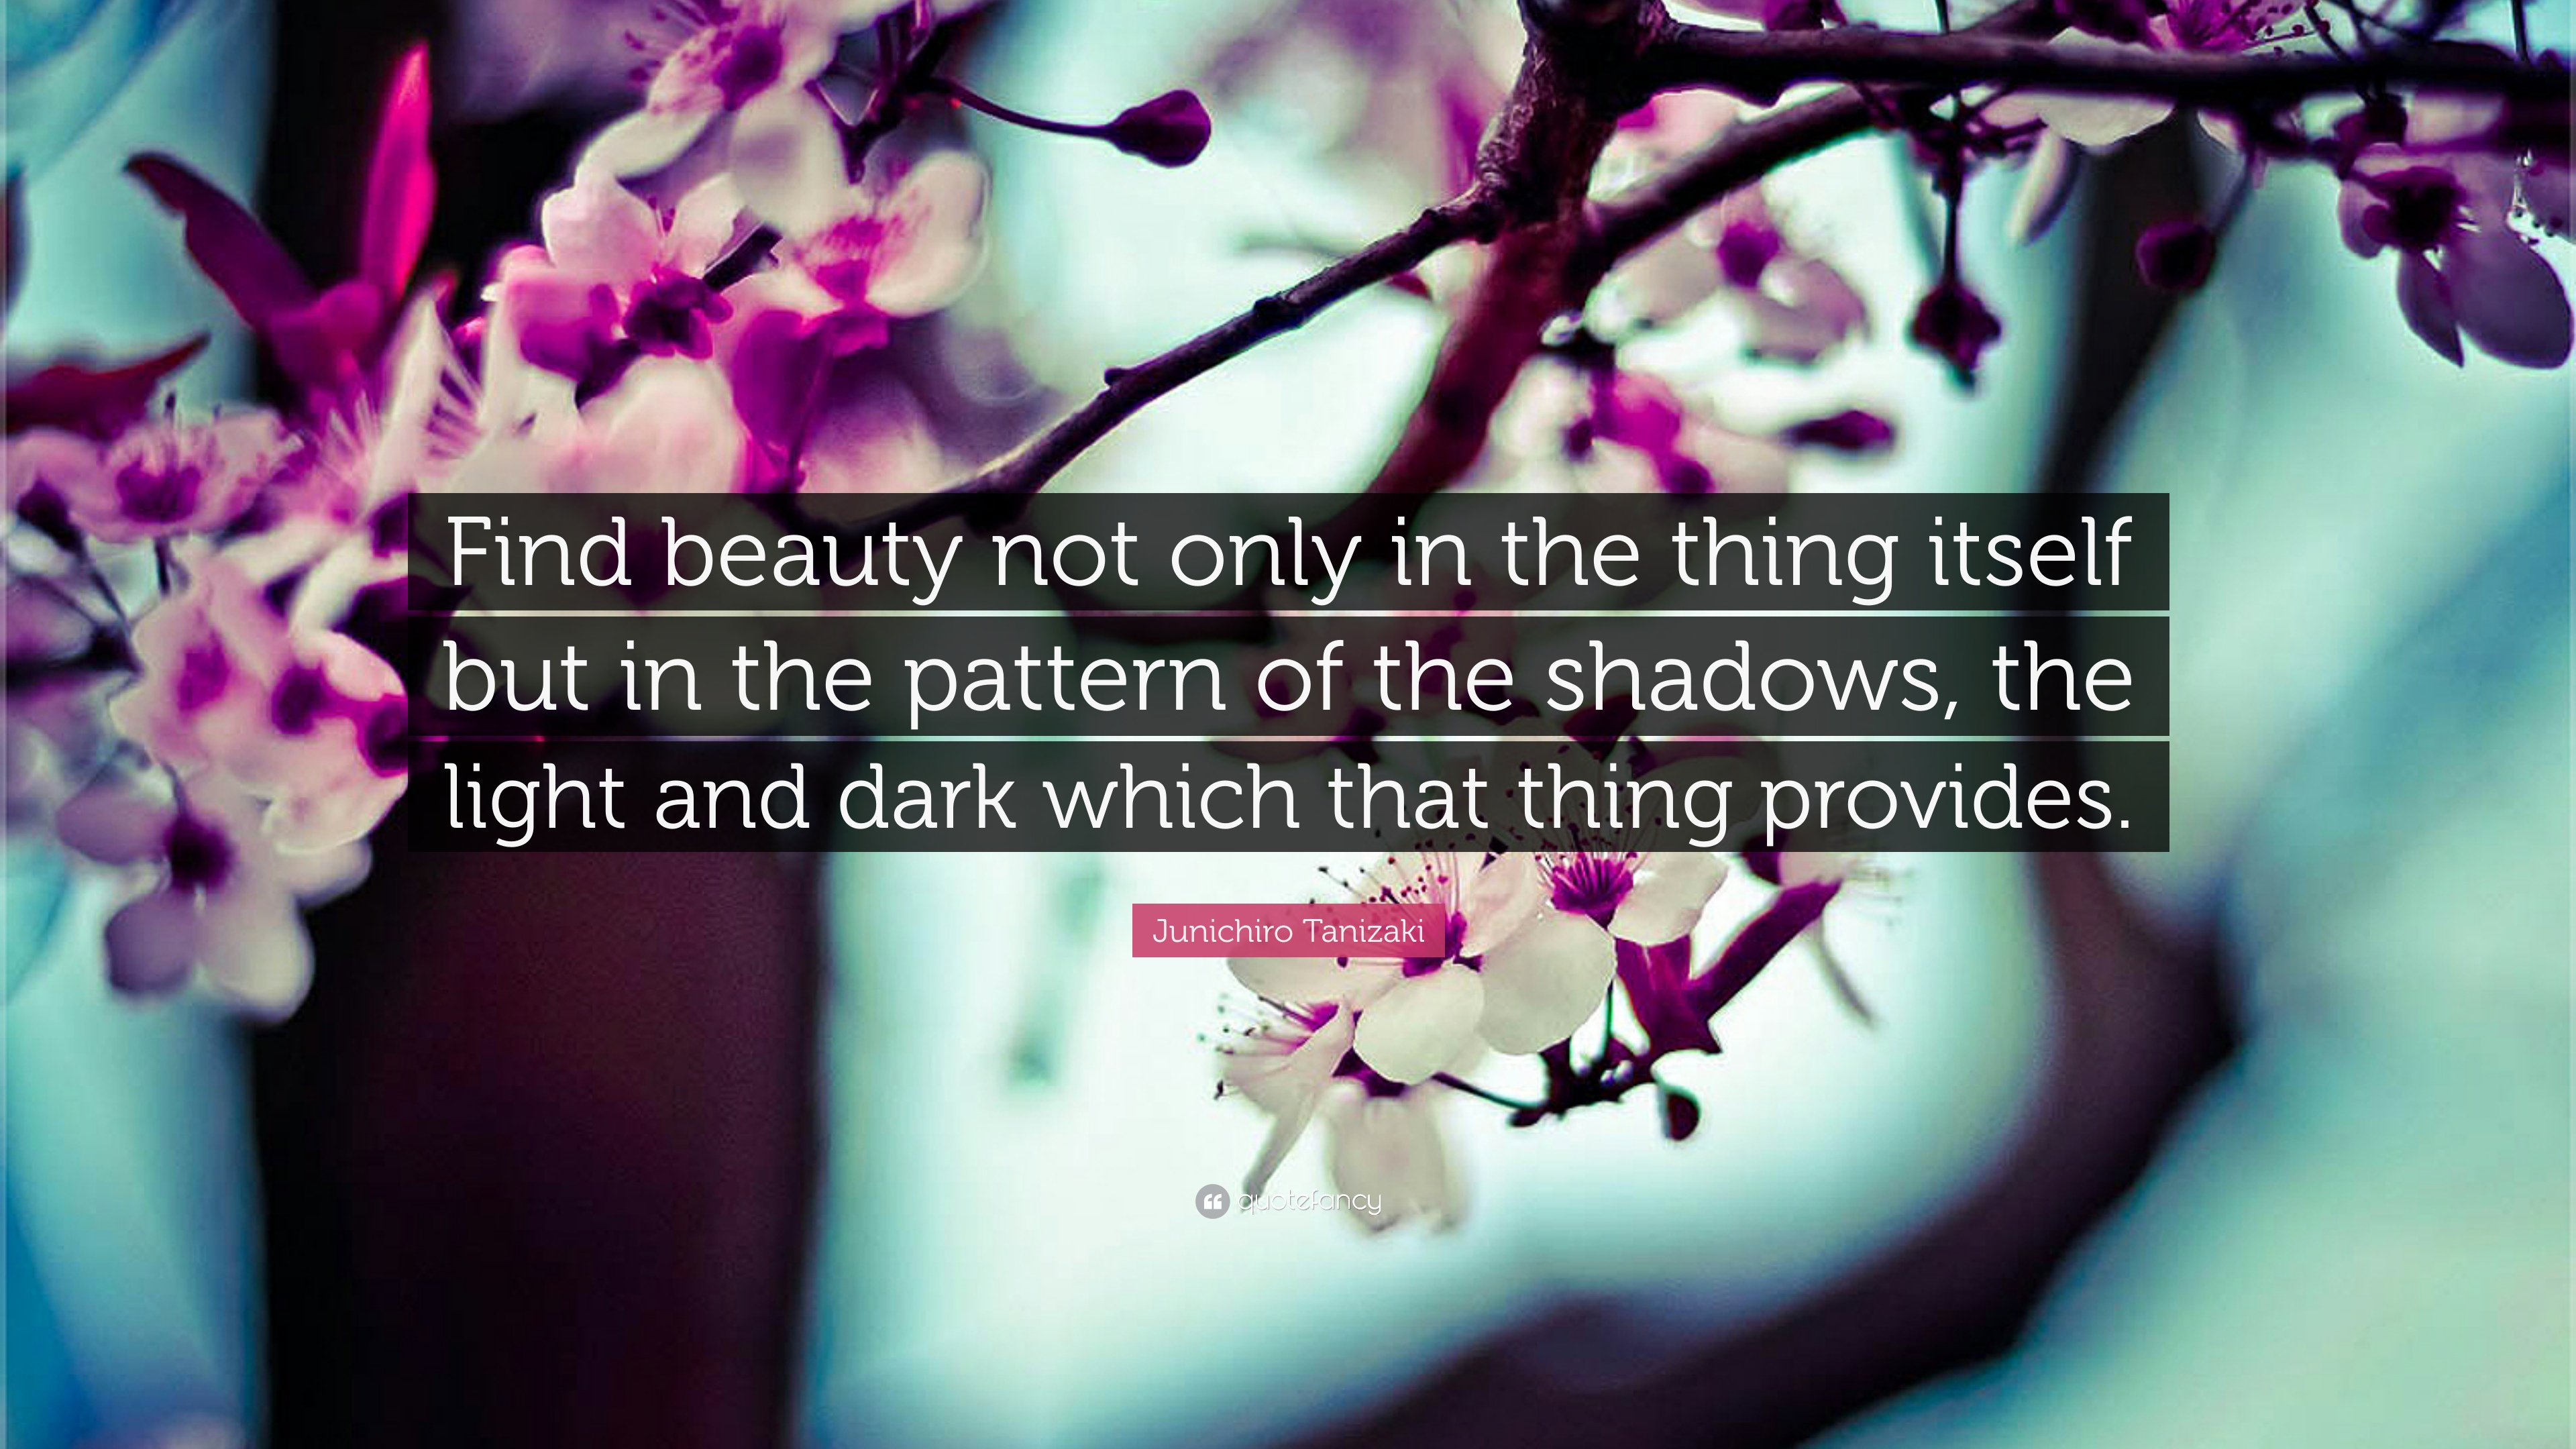 Quotes of the great about beauty and not only